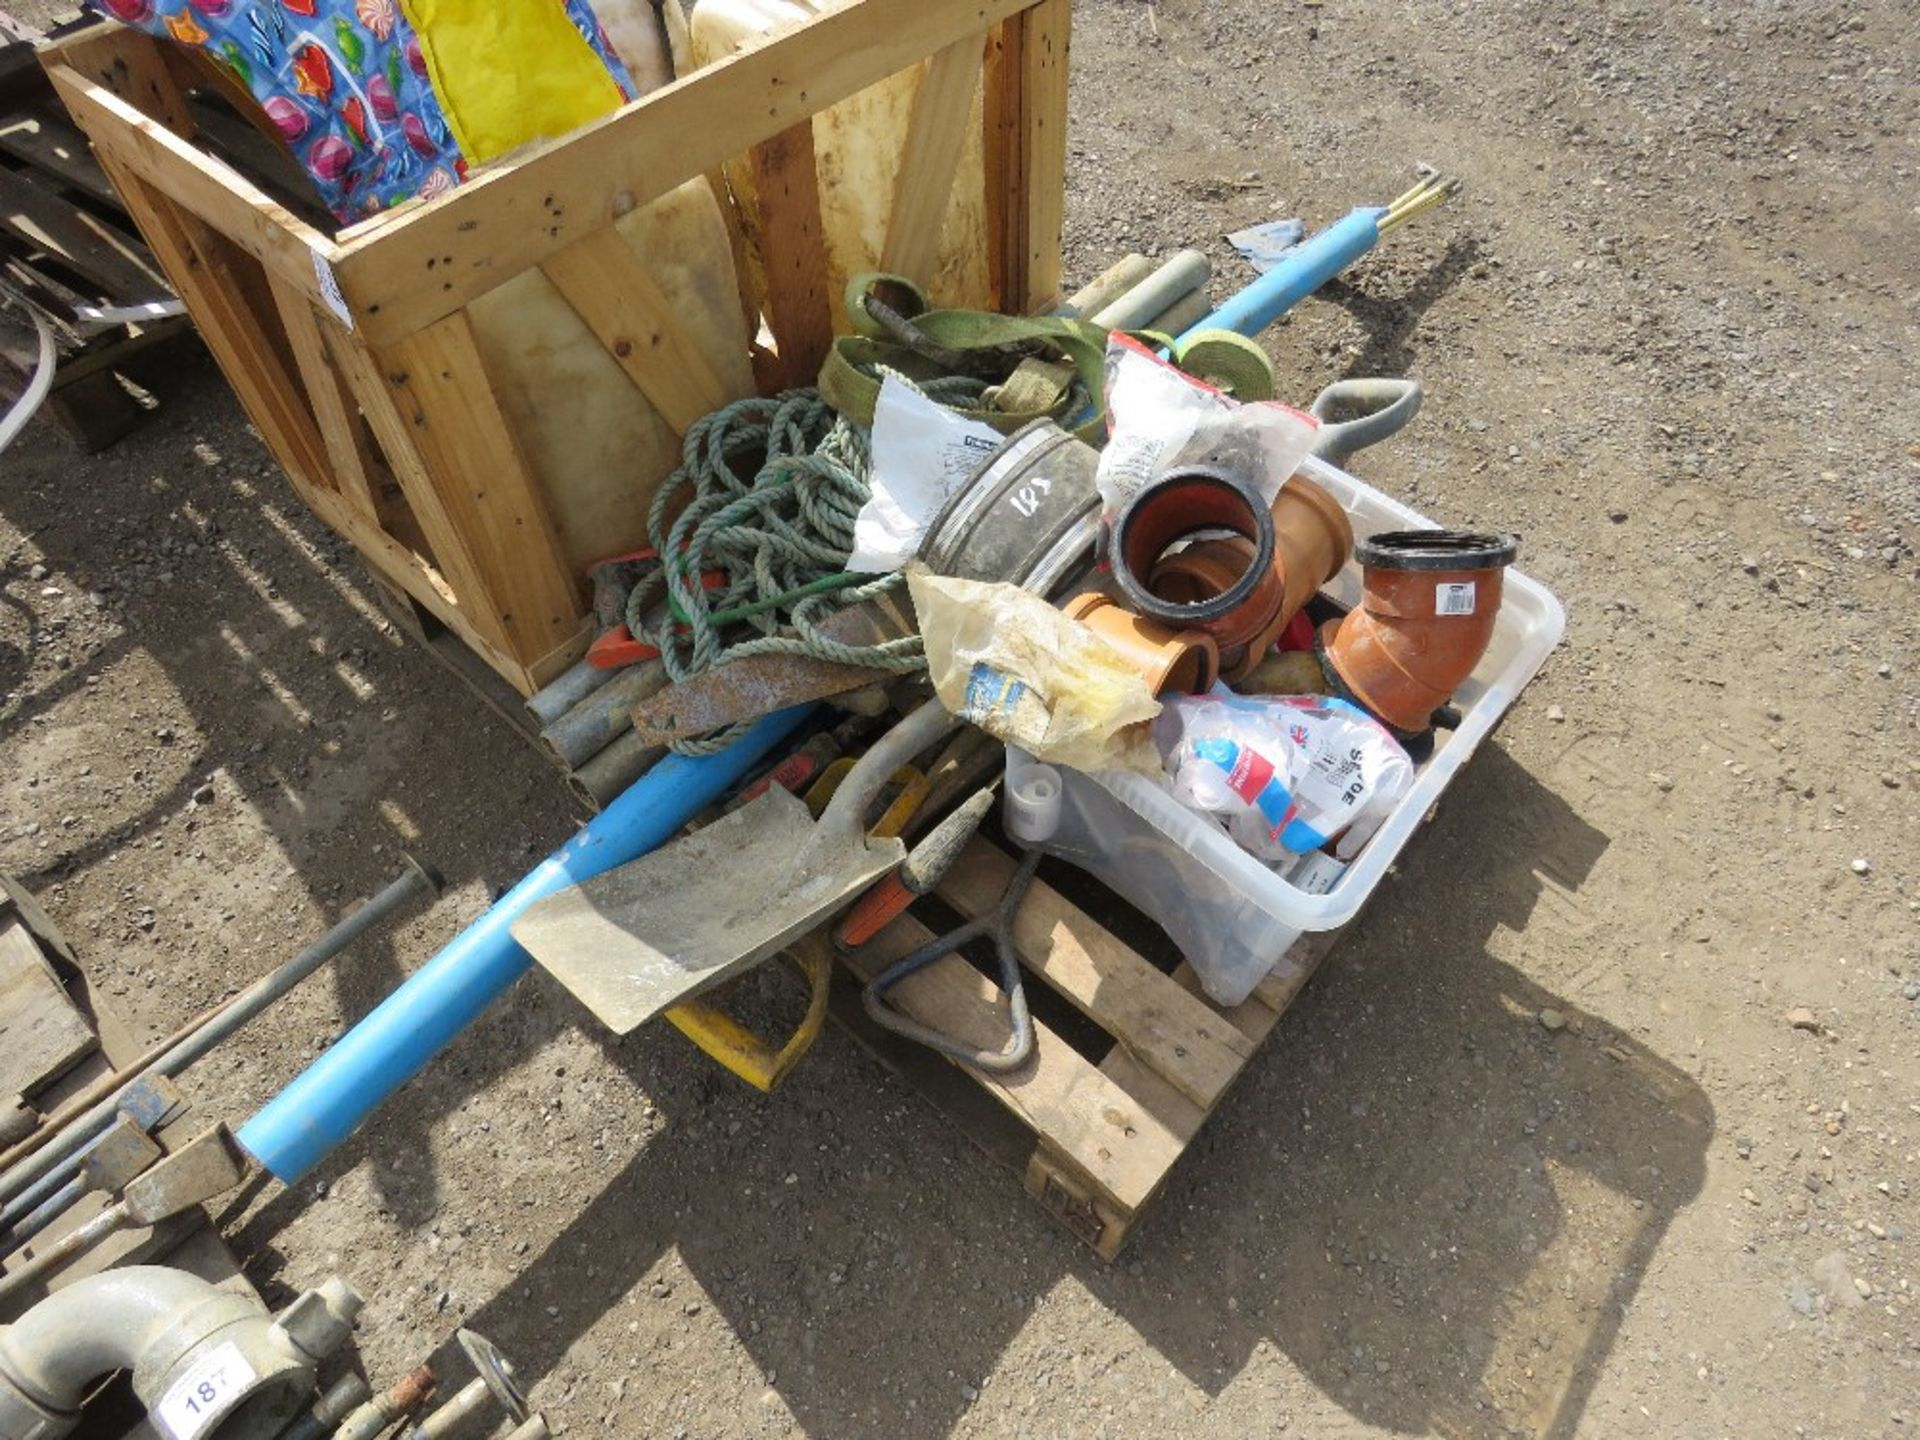 PALLET CONTAINING TOOLS, INCLUDING WET CUT BOTTLES, TOOLS, CABLE RODS ETC.